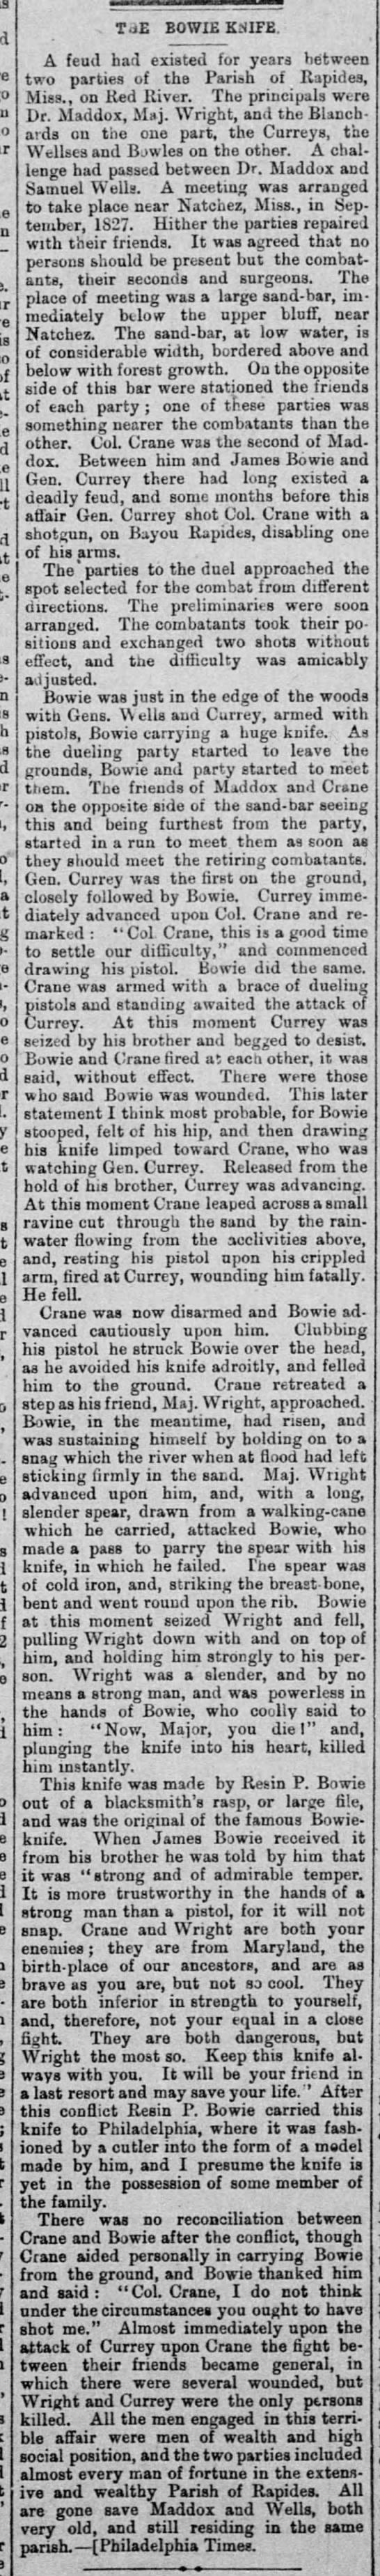 The Record-Union (Sacramento) March 12, 1881 p. 2 The Bowie Knife -